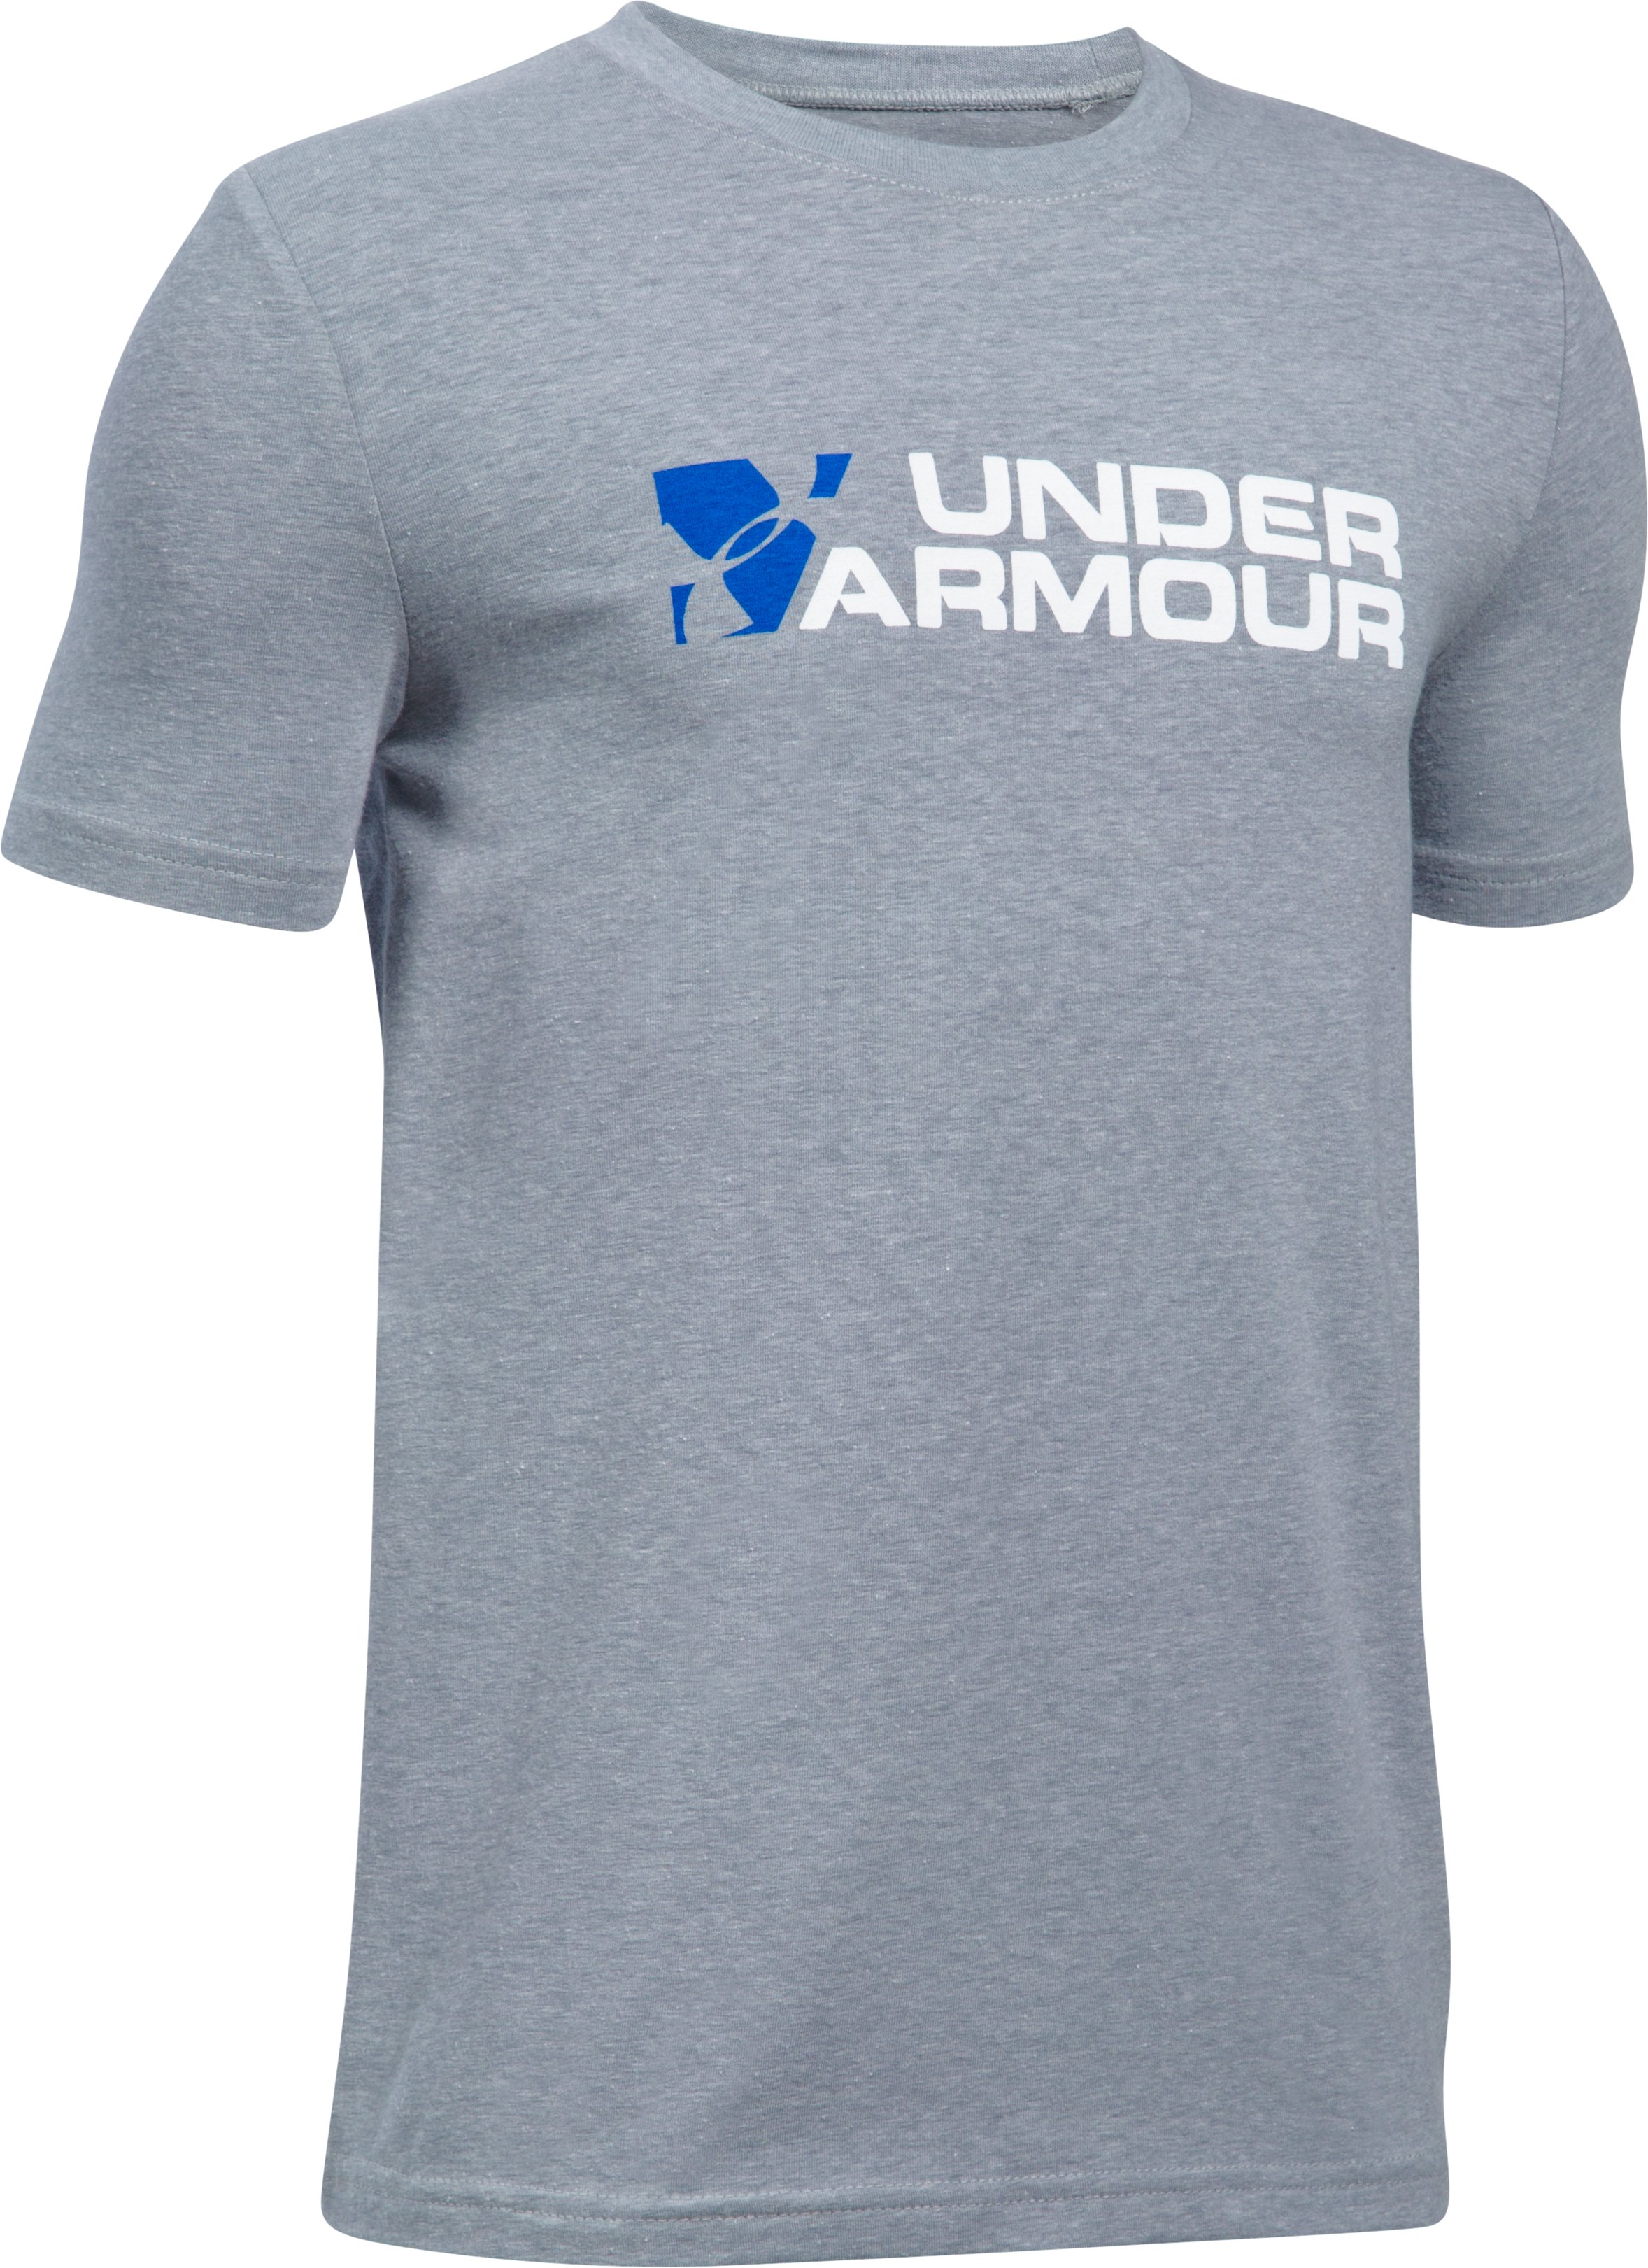 Boys' UA Duo Branded T-Shirt, STEEL LIGHT HEATHER, undefined